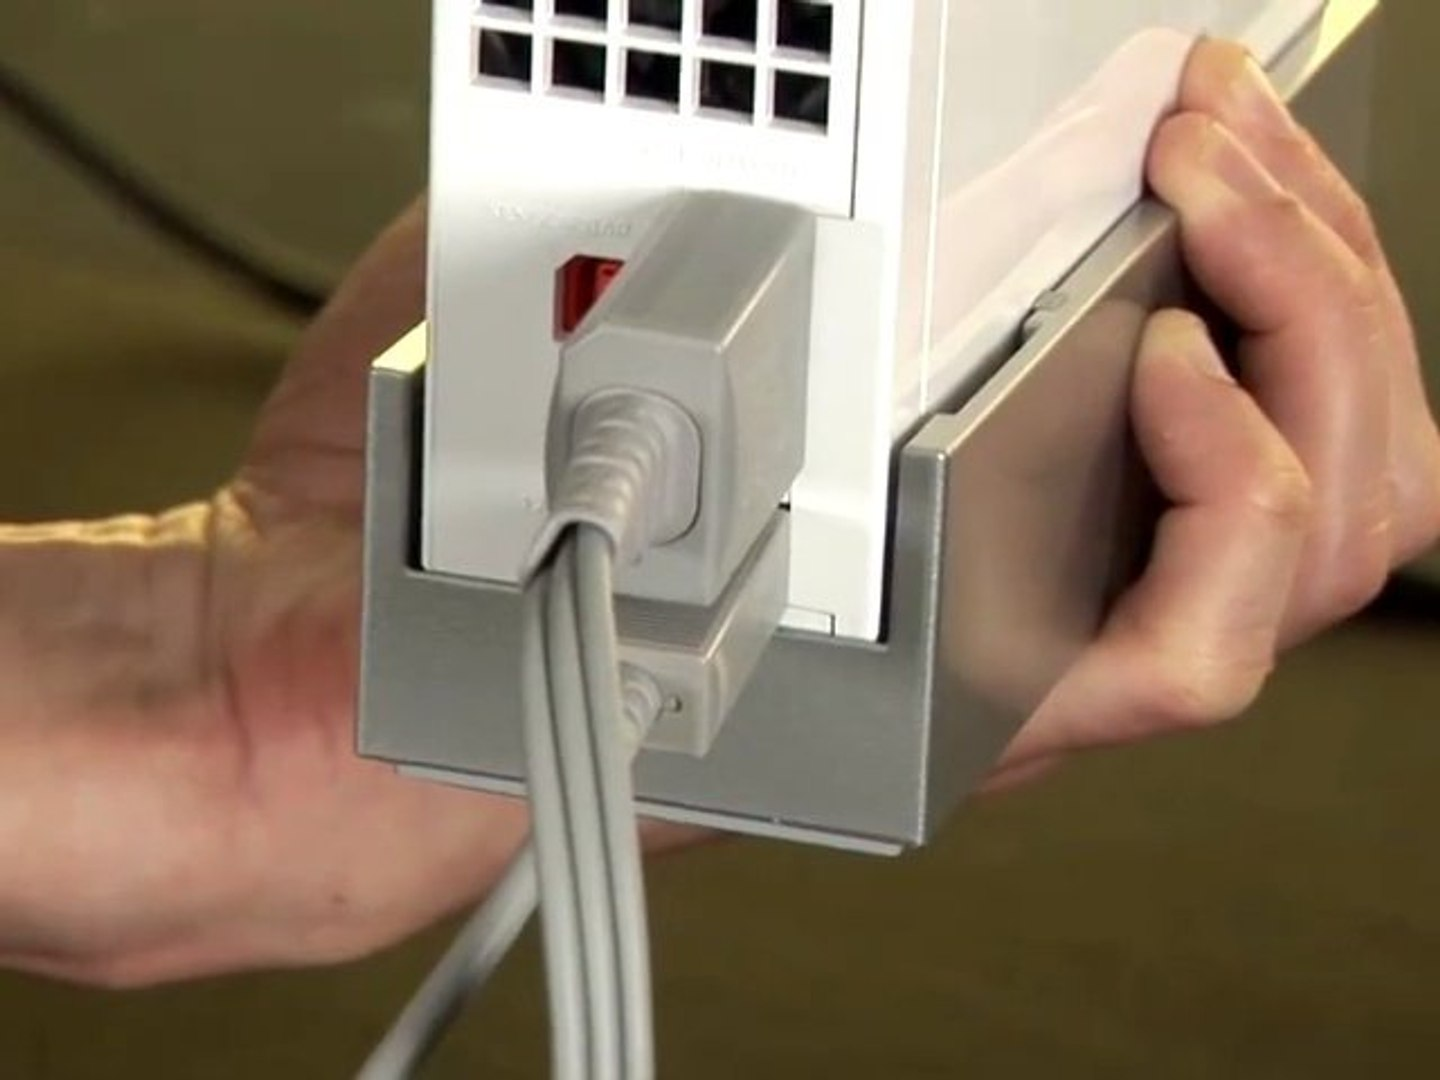 How To Set Up A Wii